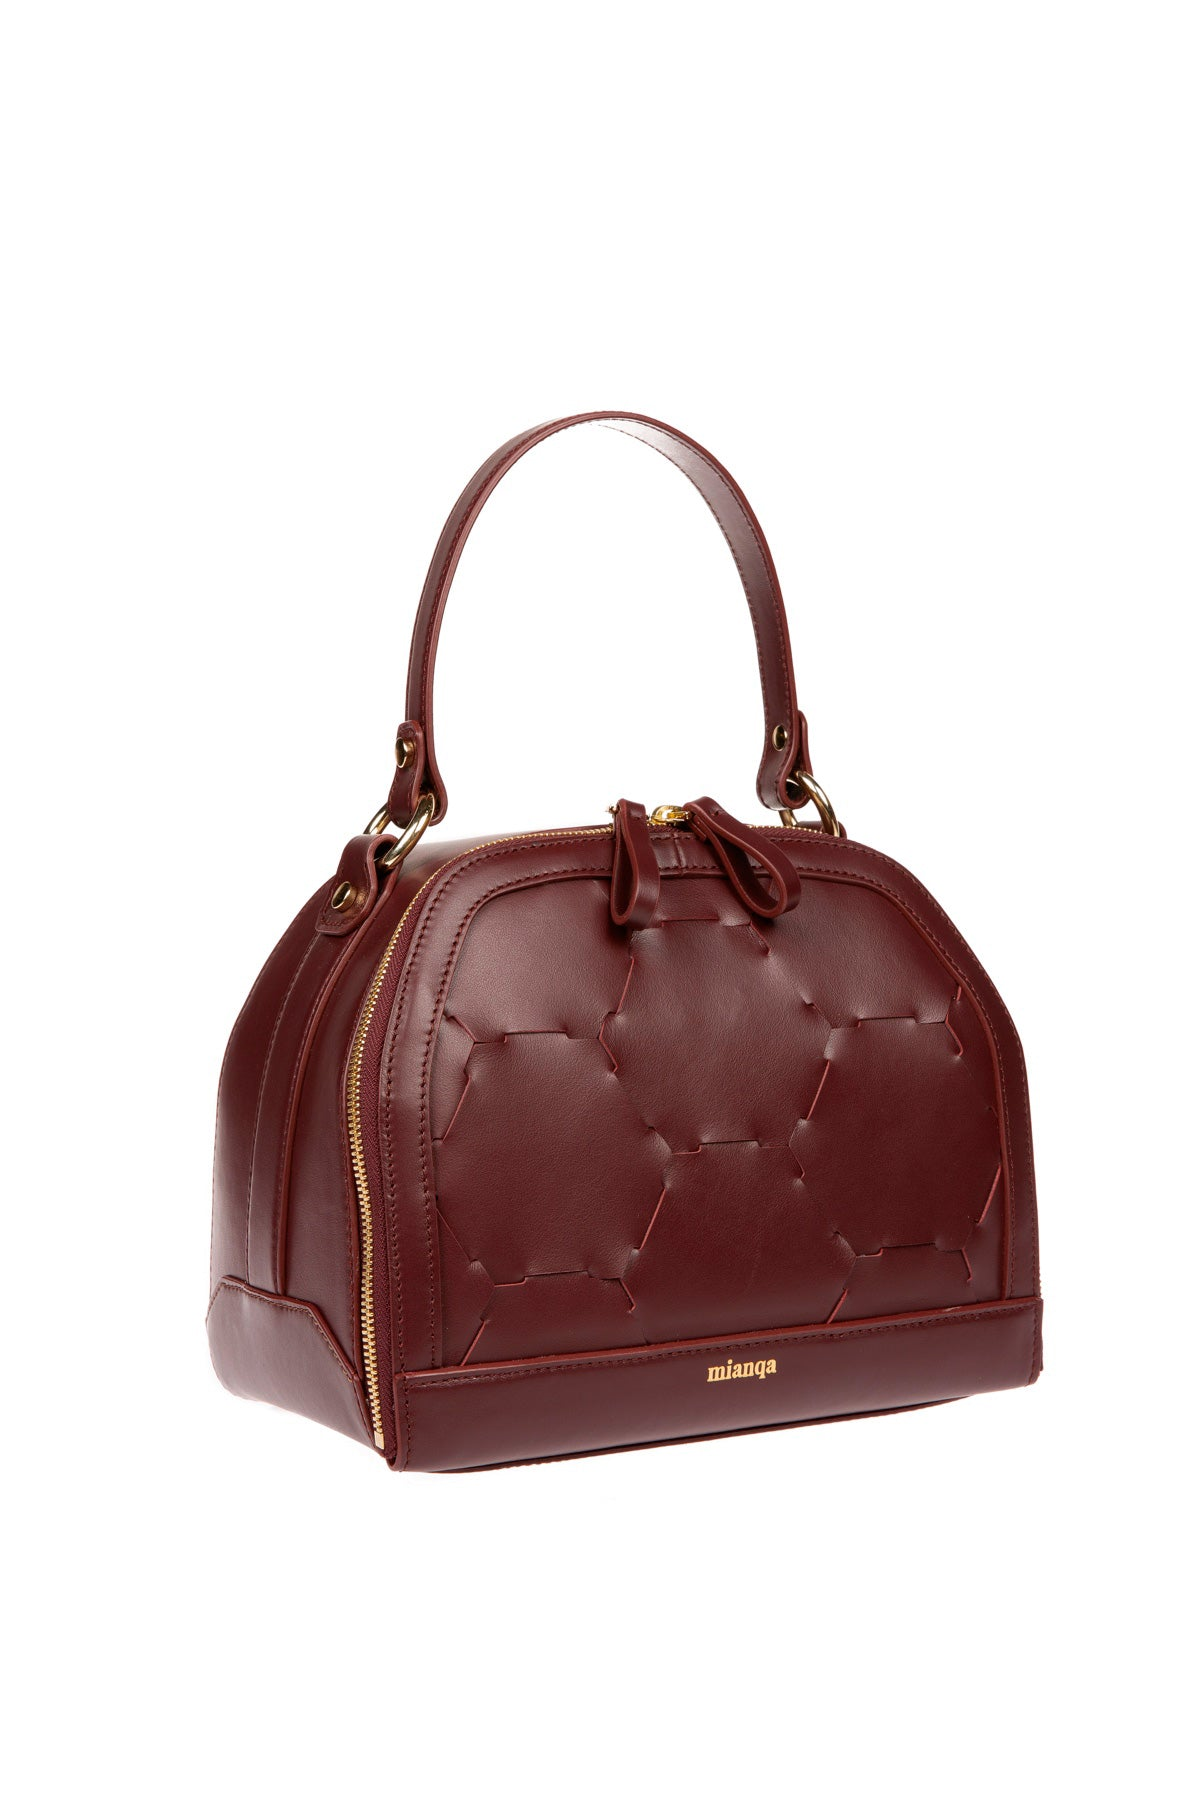 F A T M A | Demi Bag Bordeaux